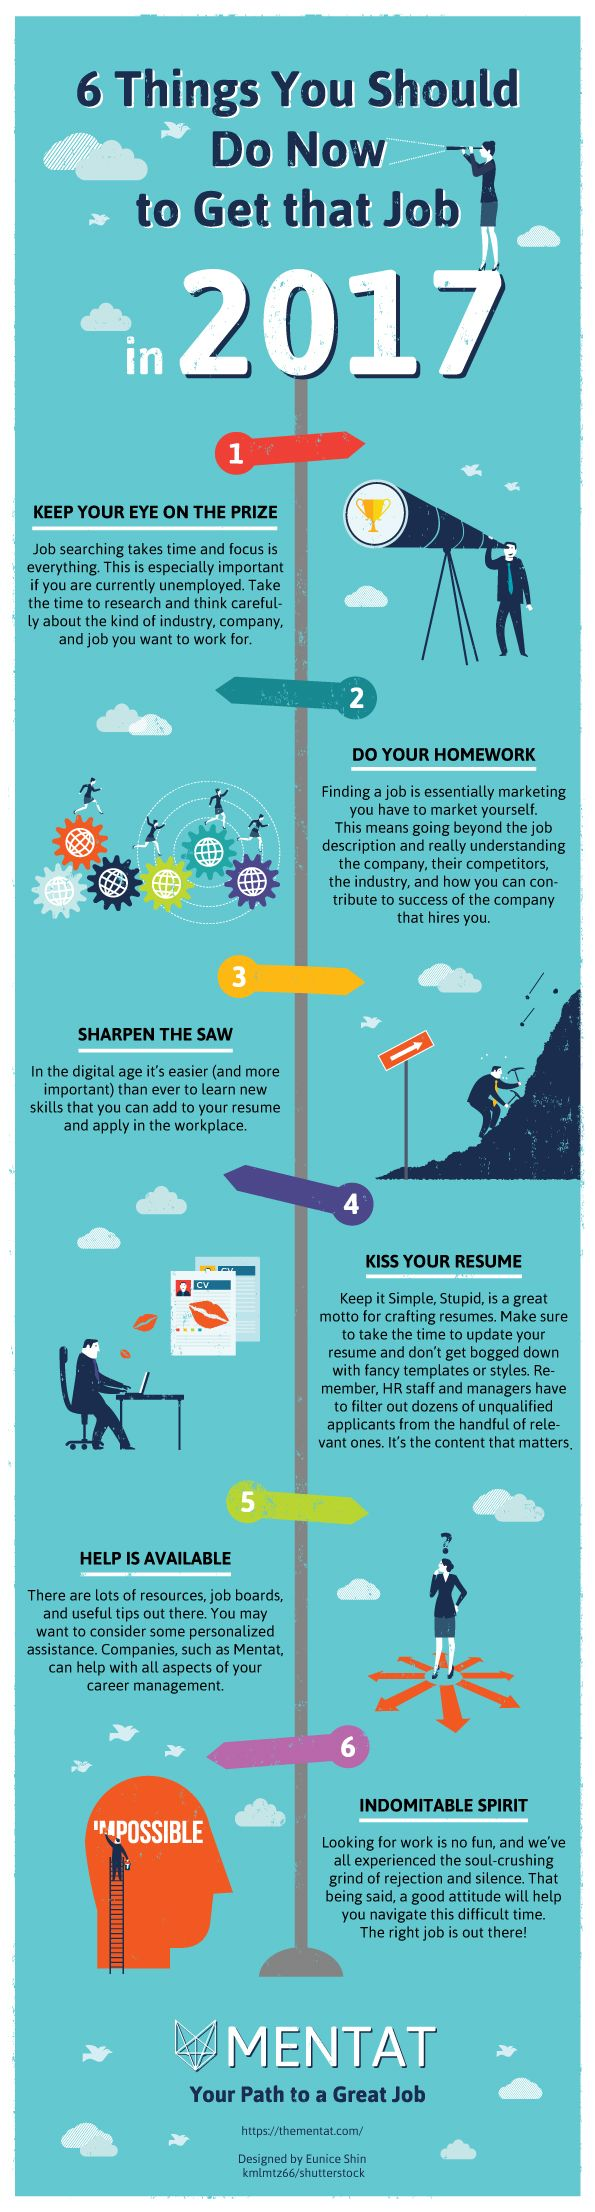 17 things not to say in a job interview infographic useful 6 things you should do now to get that job in 2017 infographic if